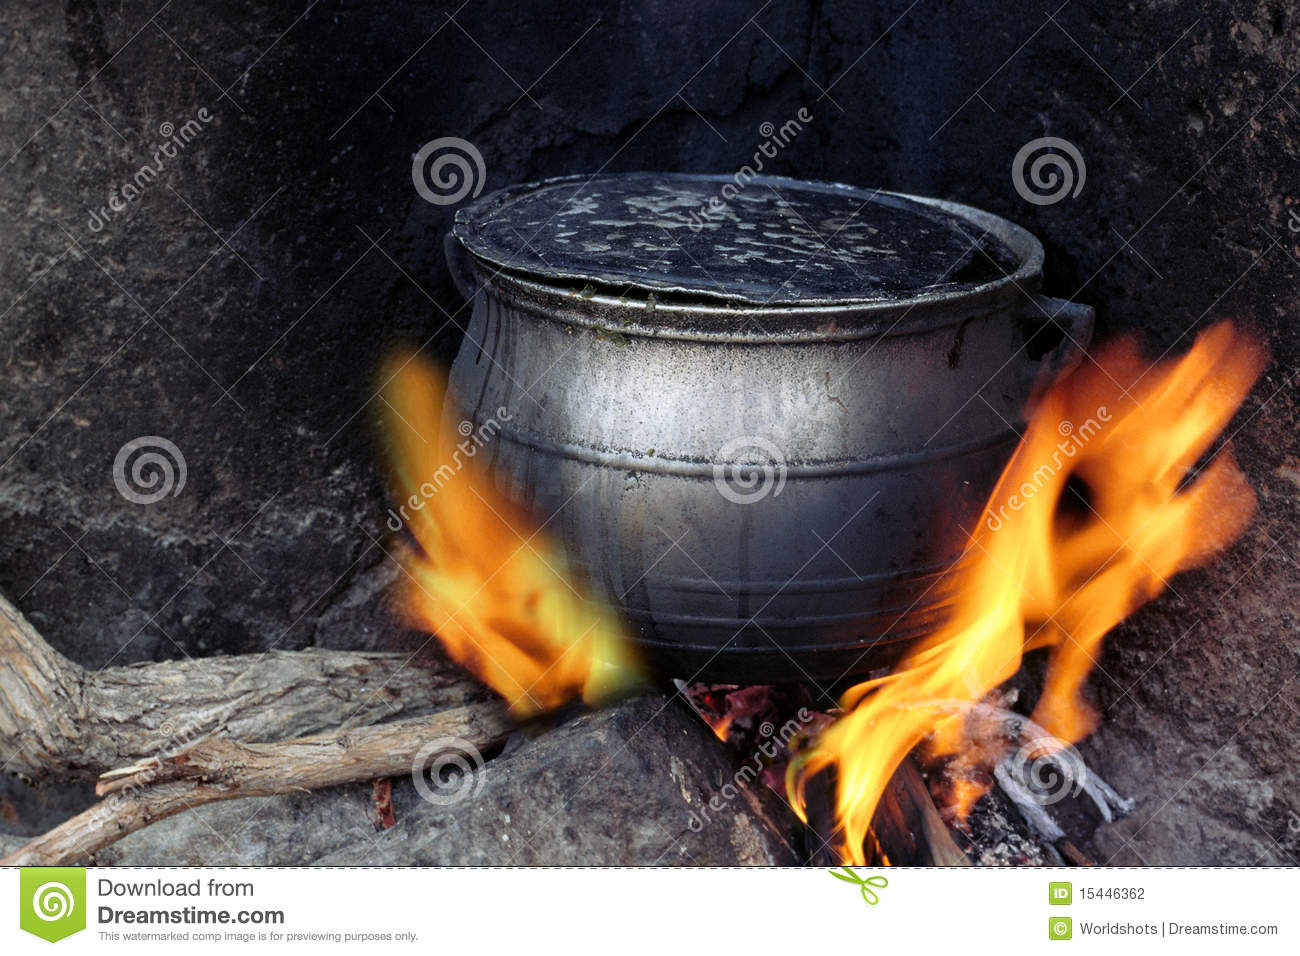 Black Coocking Pot Heated On Fire Stock Photography